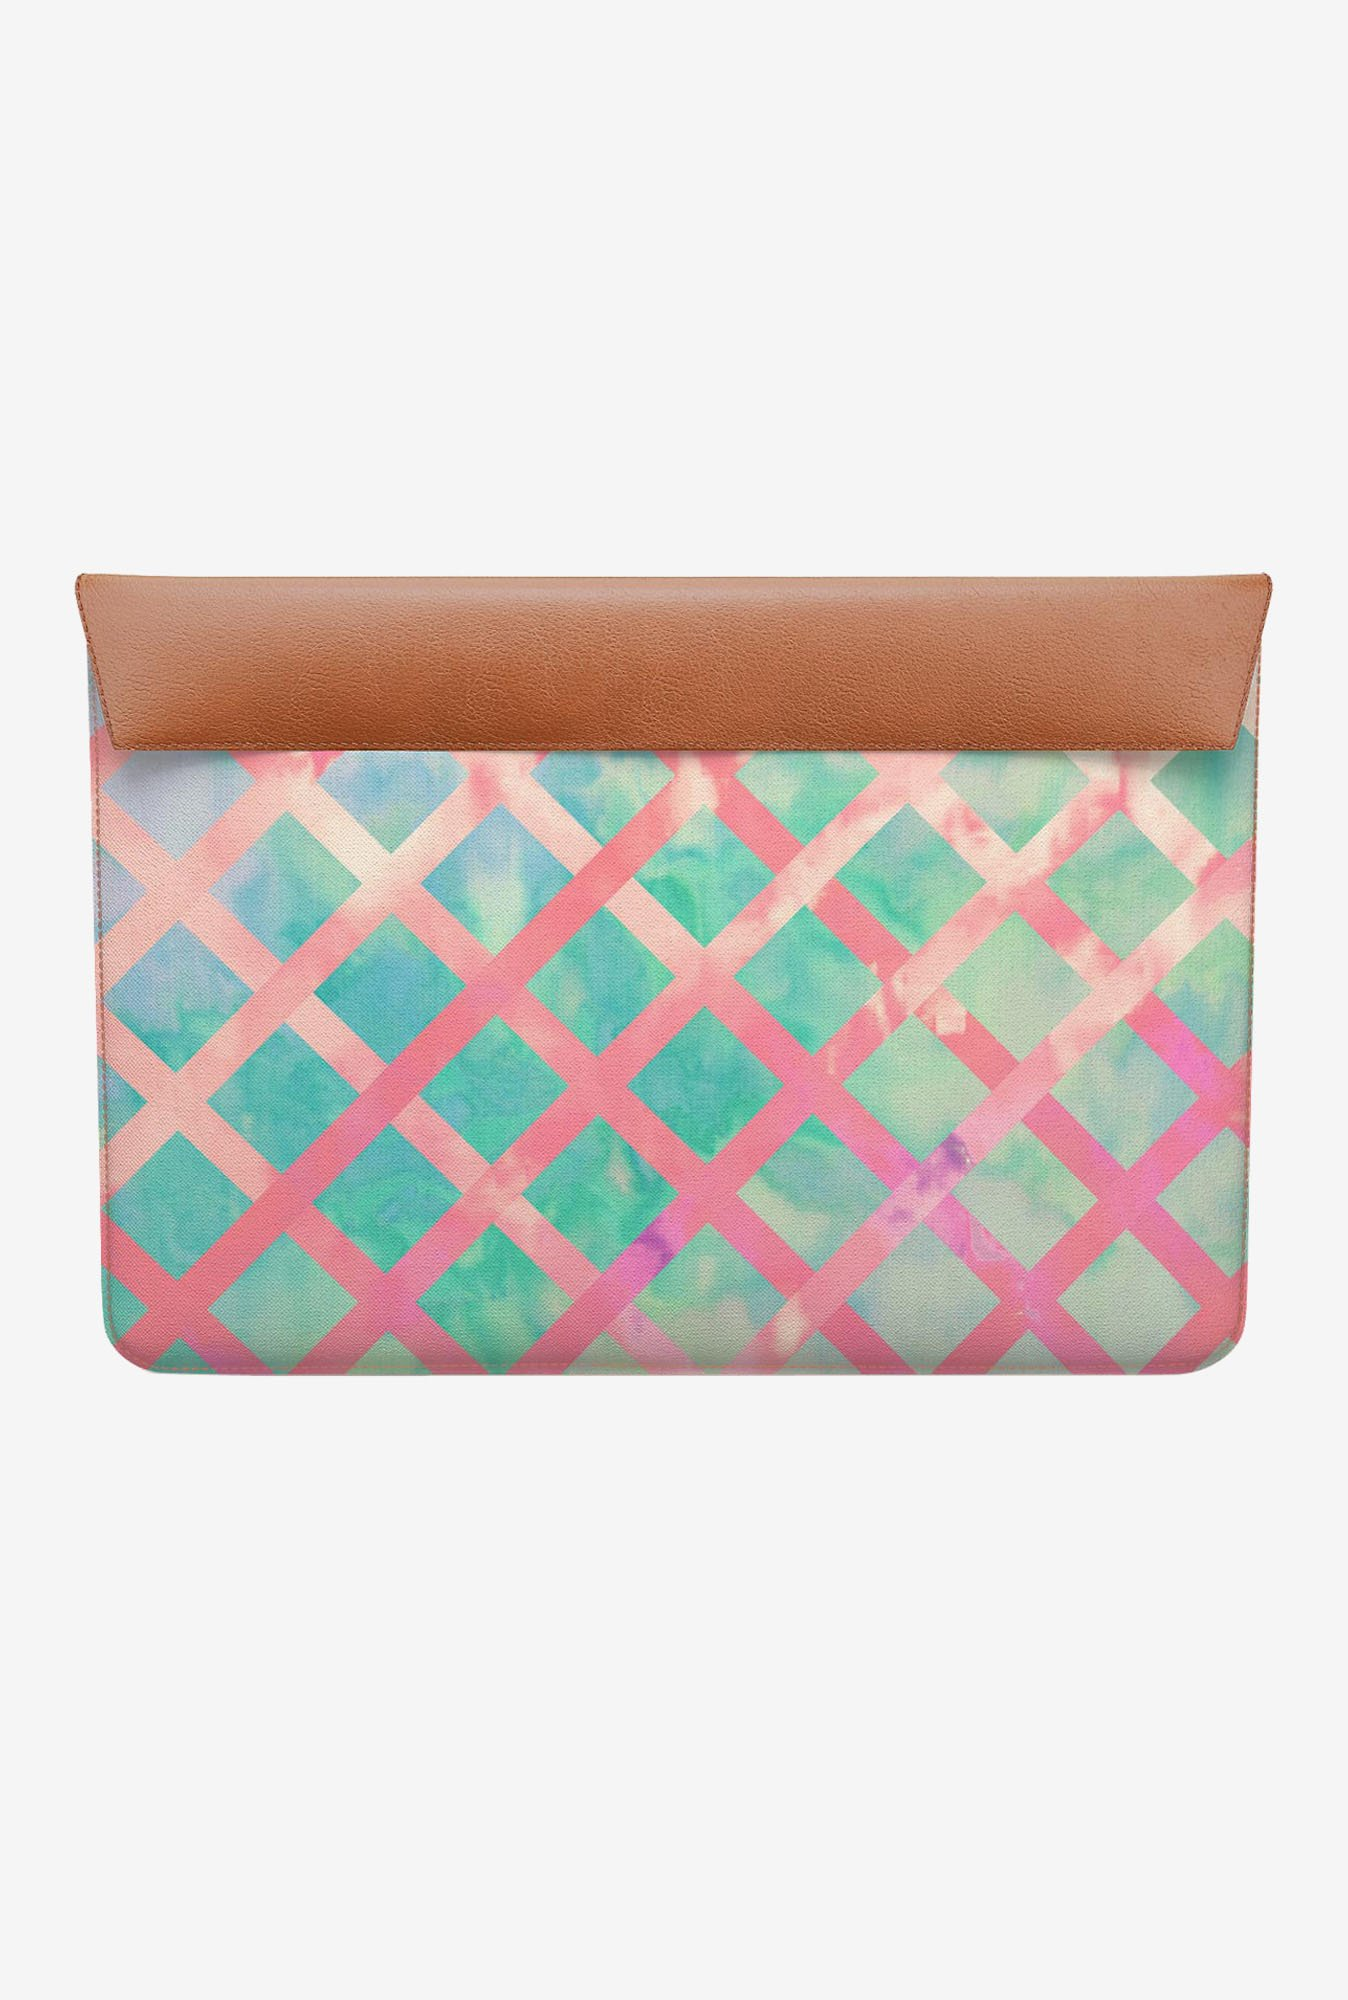 DailyObjects Retro Lattice MacBook Air 13 Envelope Sleeve